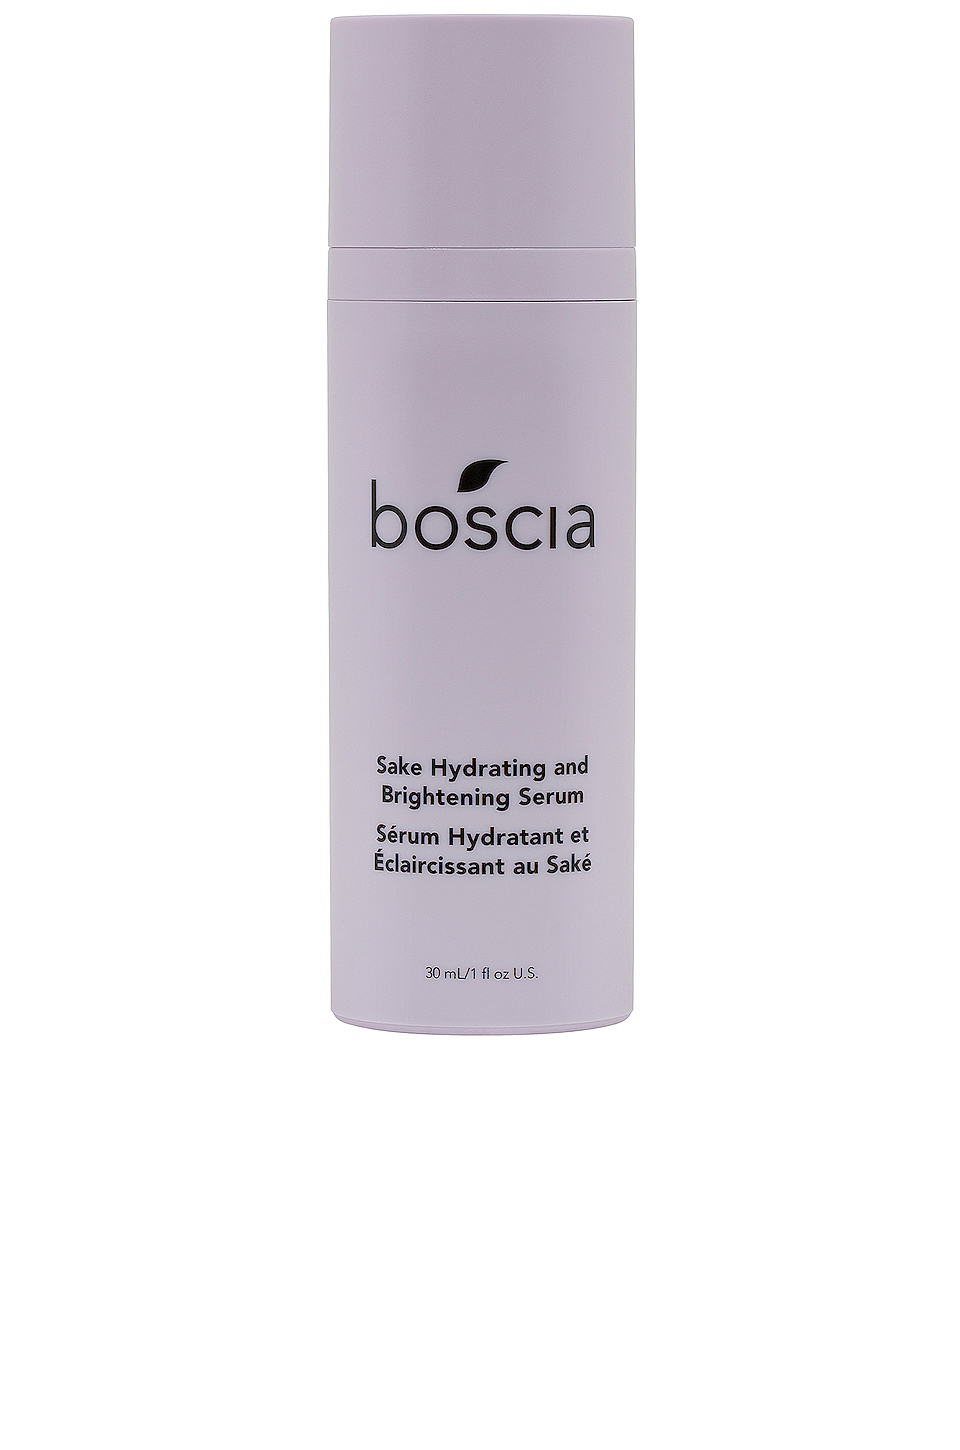 BOSCIA Sake Hydrating and Brightening Serum, Skin Care, London Loves Beauty